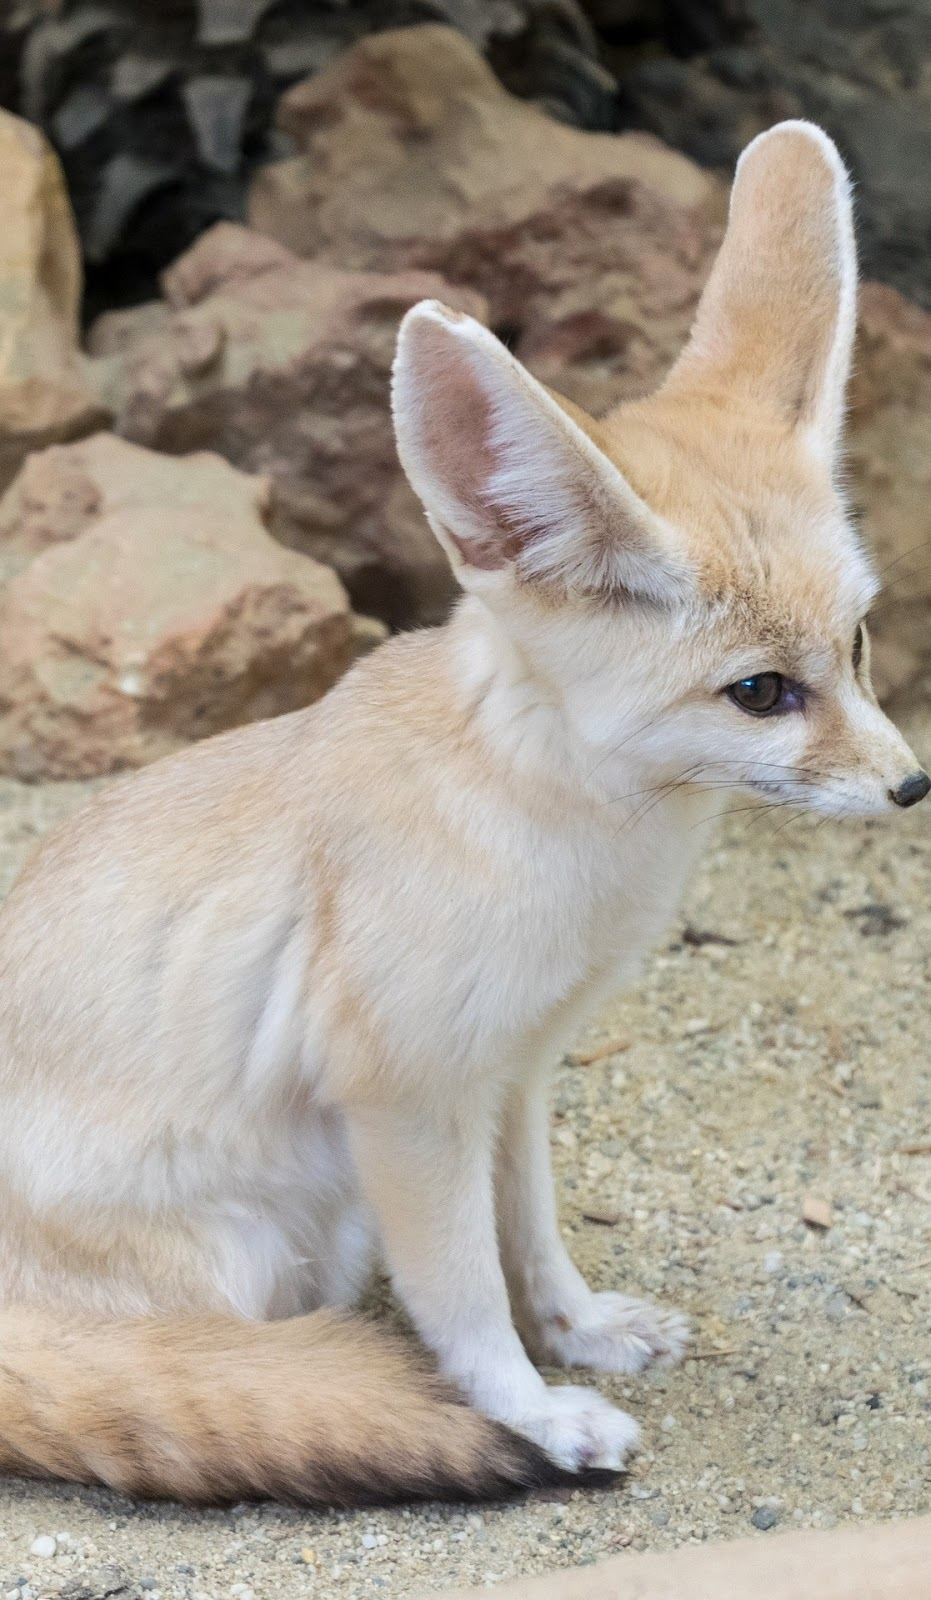 Cute fennec fox.